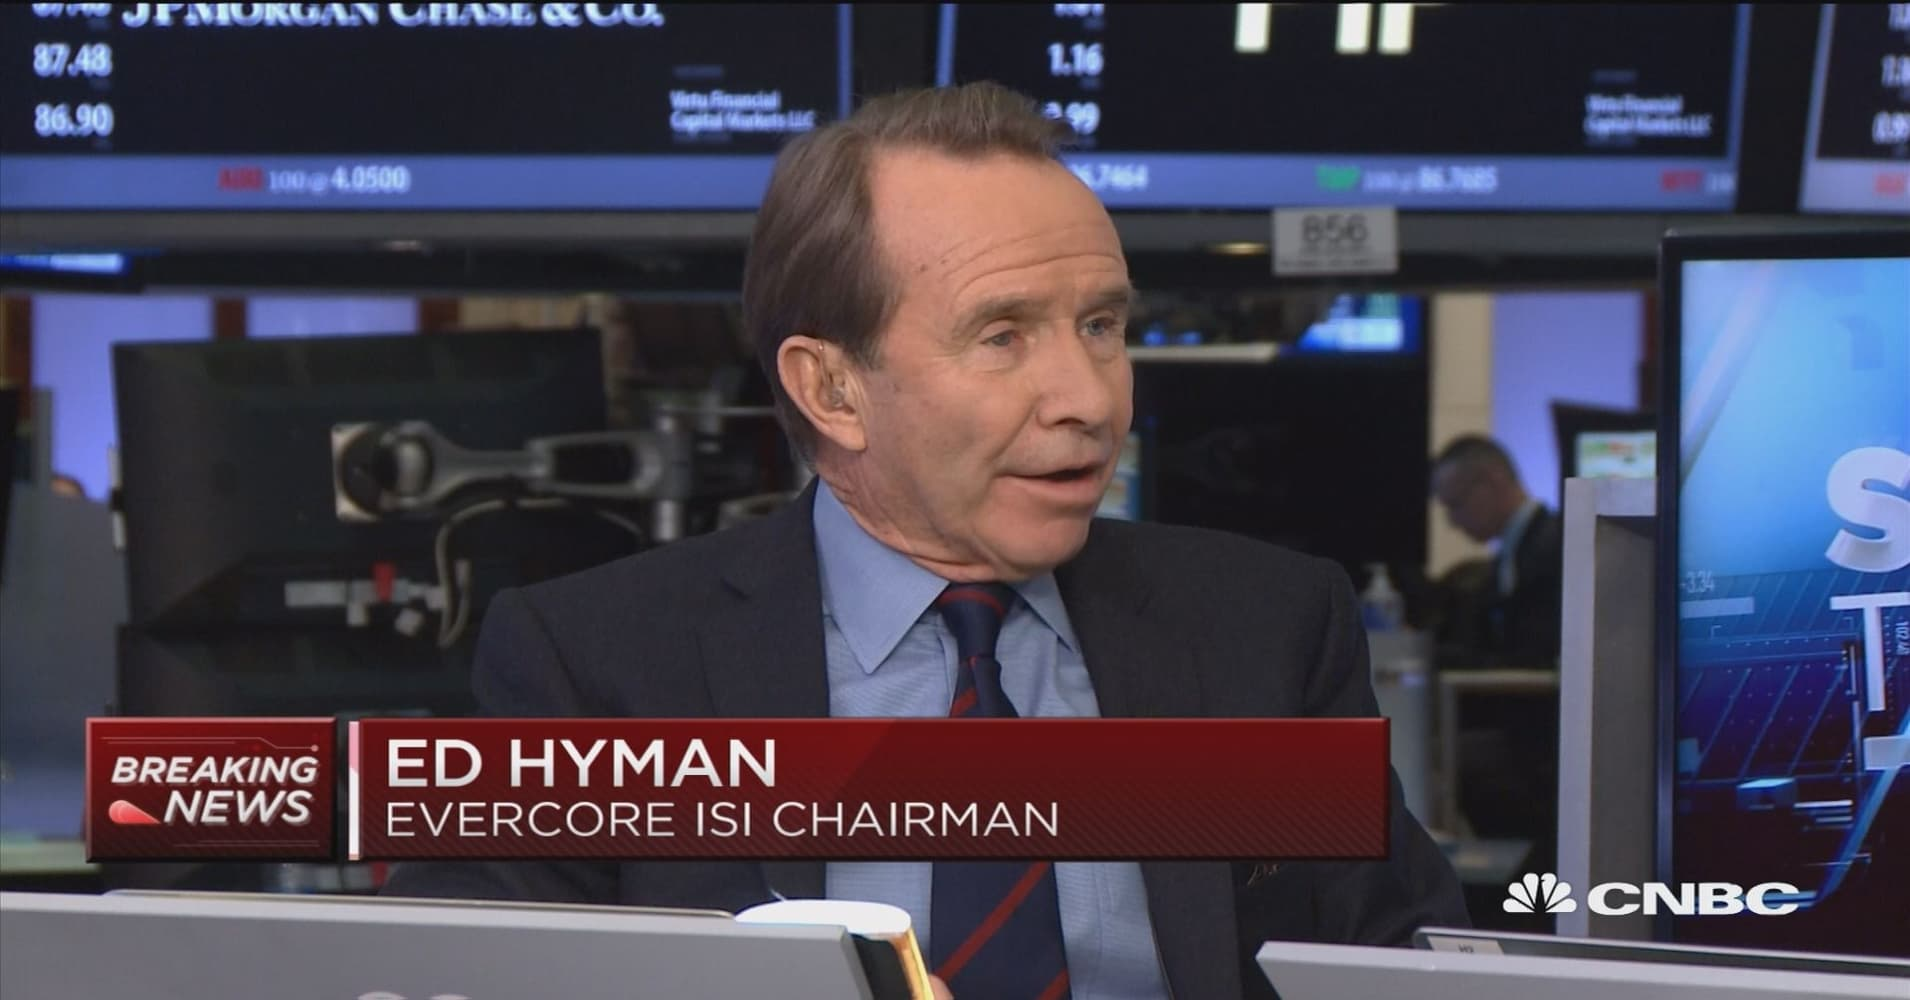 Ed Hyman, Wall Street's top-ranked economist for decades, is bullish on the market due to Trump